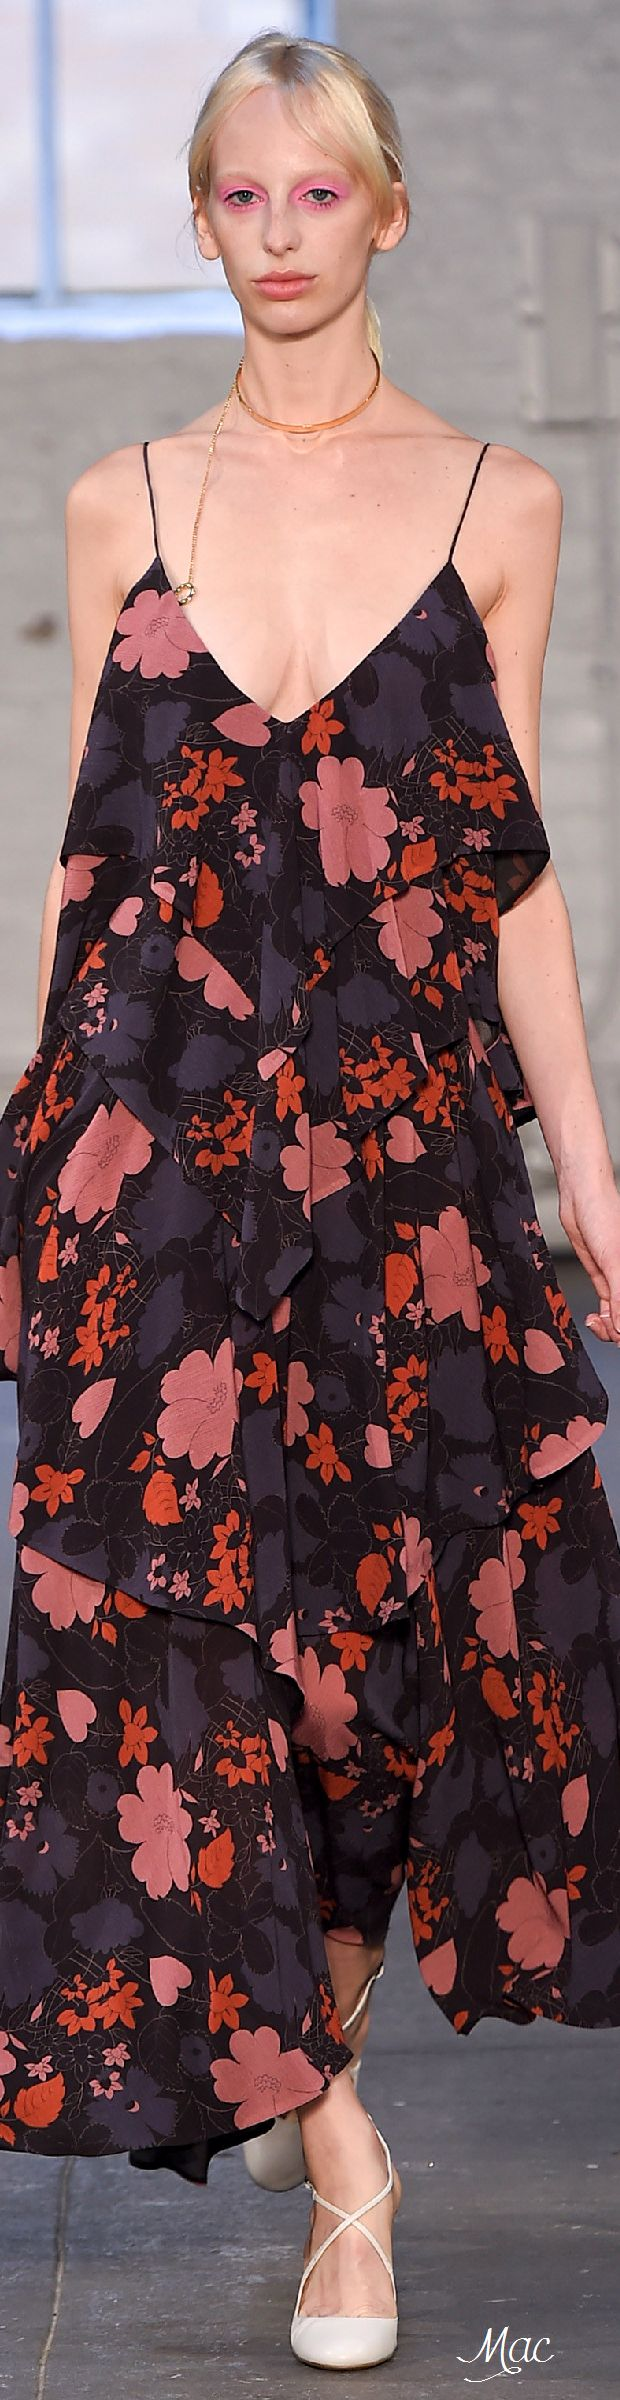 7 Best Ideas Images On Pinterest Fashion Details Show And Minimal Evia Pleated Dress Navy Check L Spring 2016 Ready To Wear Jill Stuart